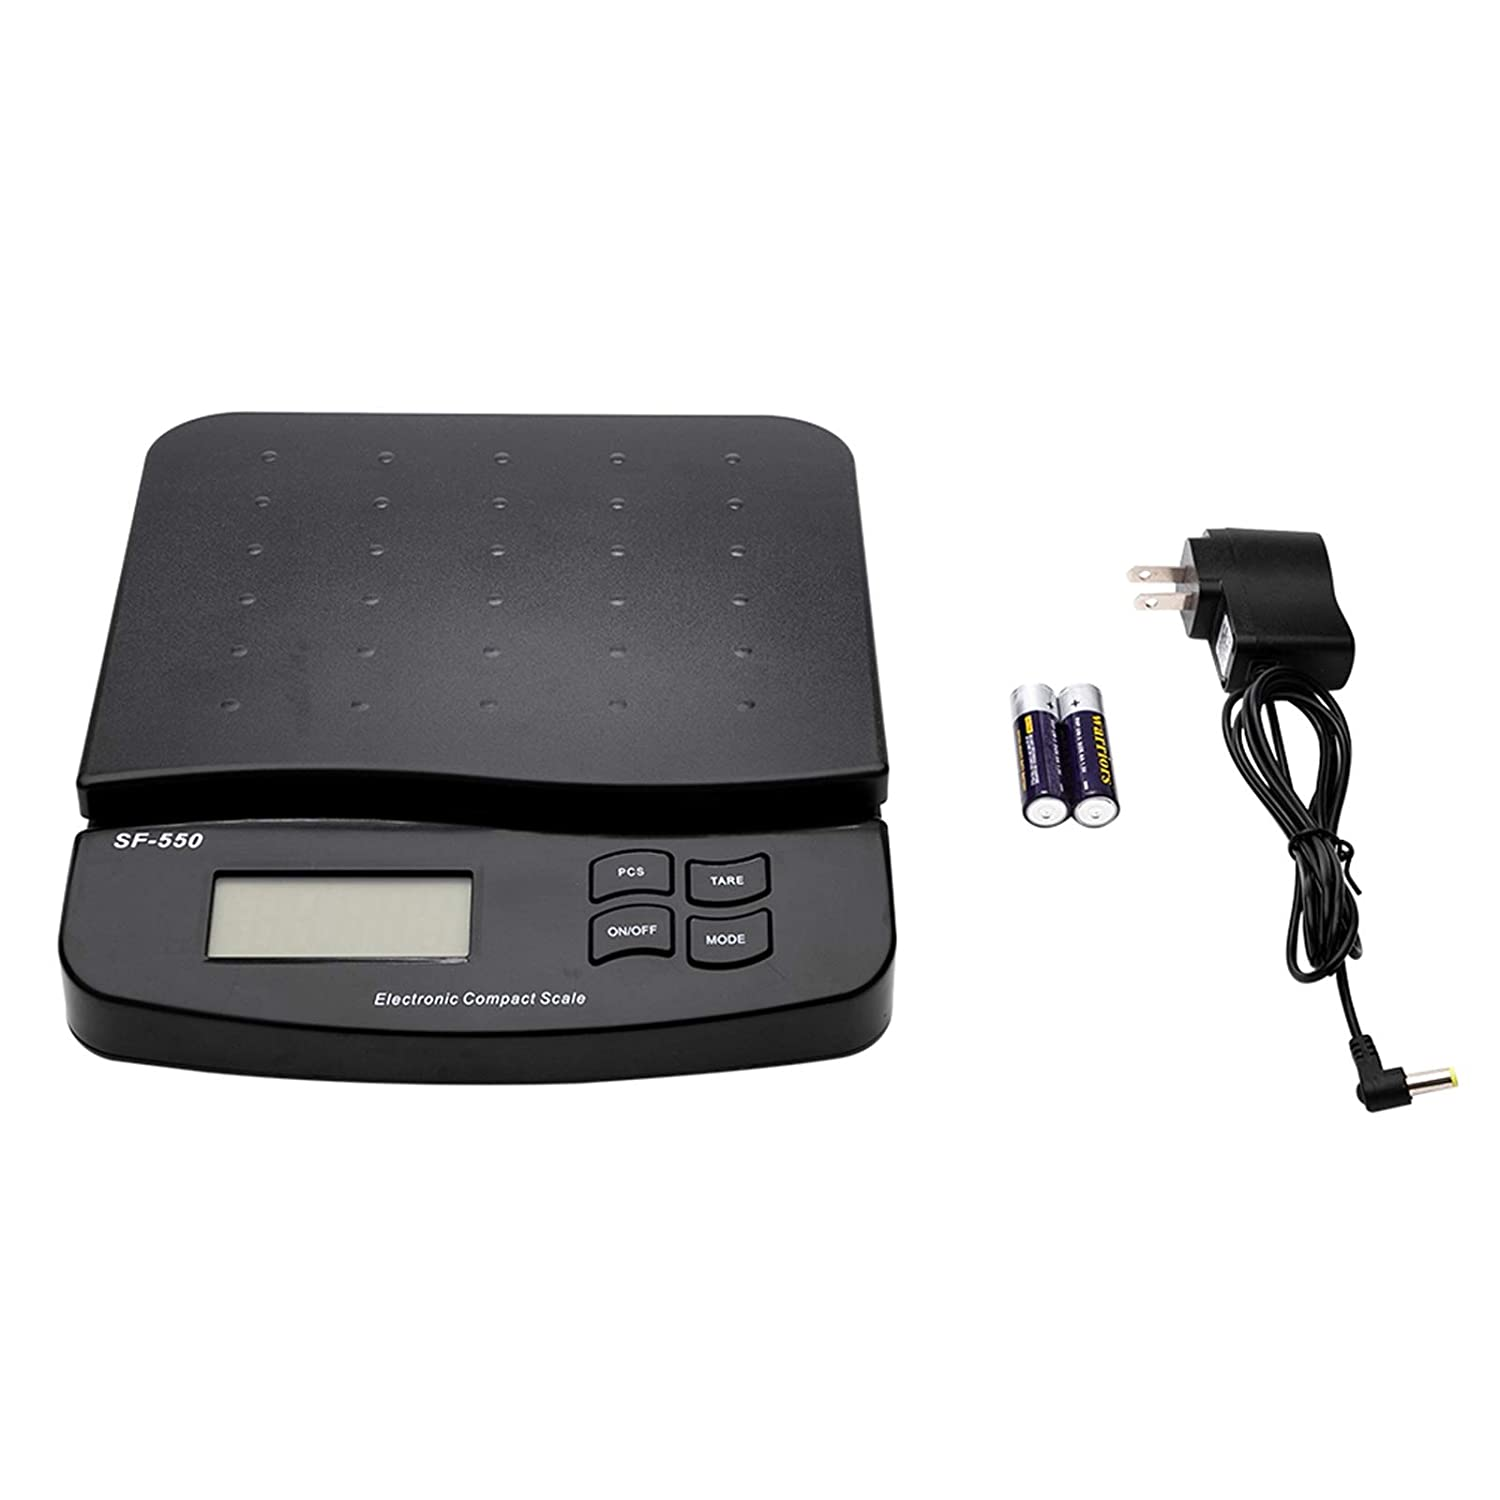 Max 71% OFF SF-550 30KG 1G Free shipping anywhere in the nation High Precision Shipping Digital LCD Postal Scale